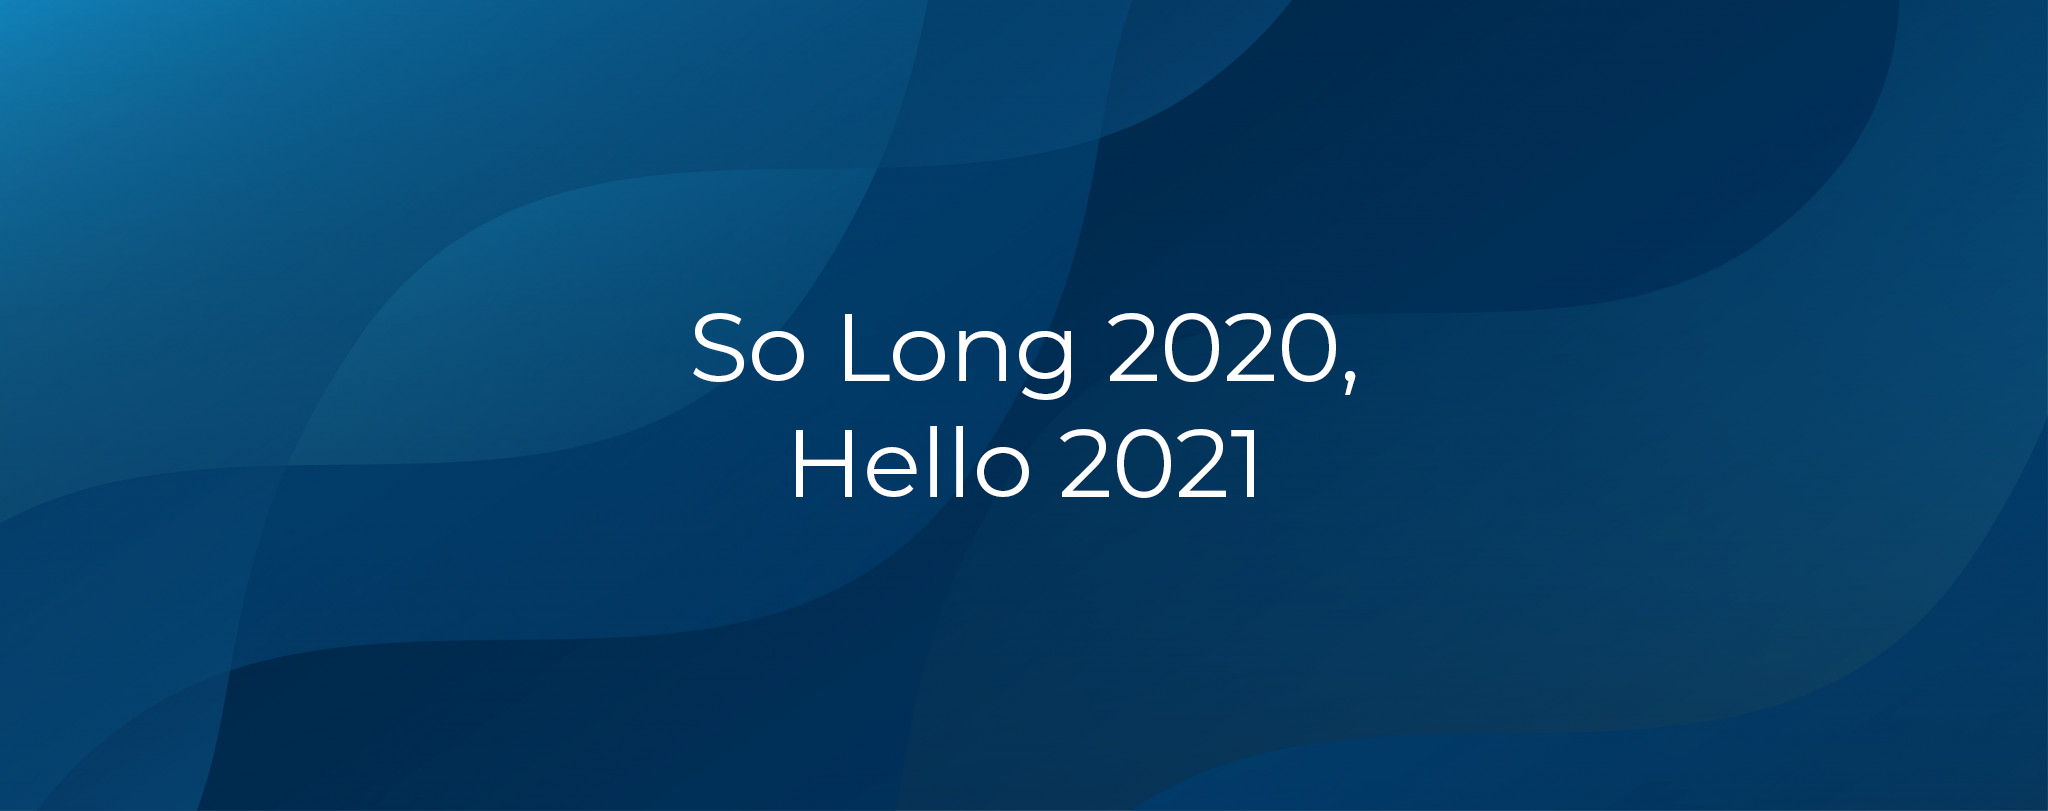 So Long 2020 Hello 2021